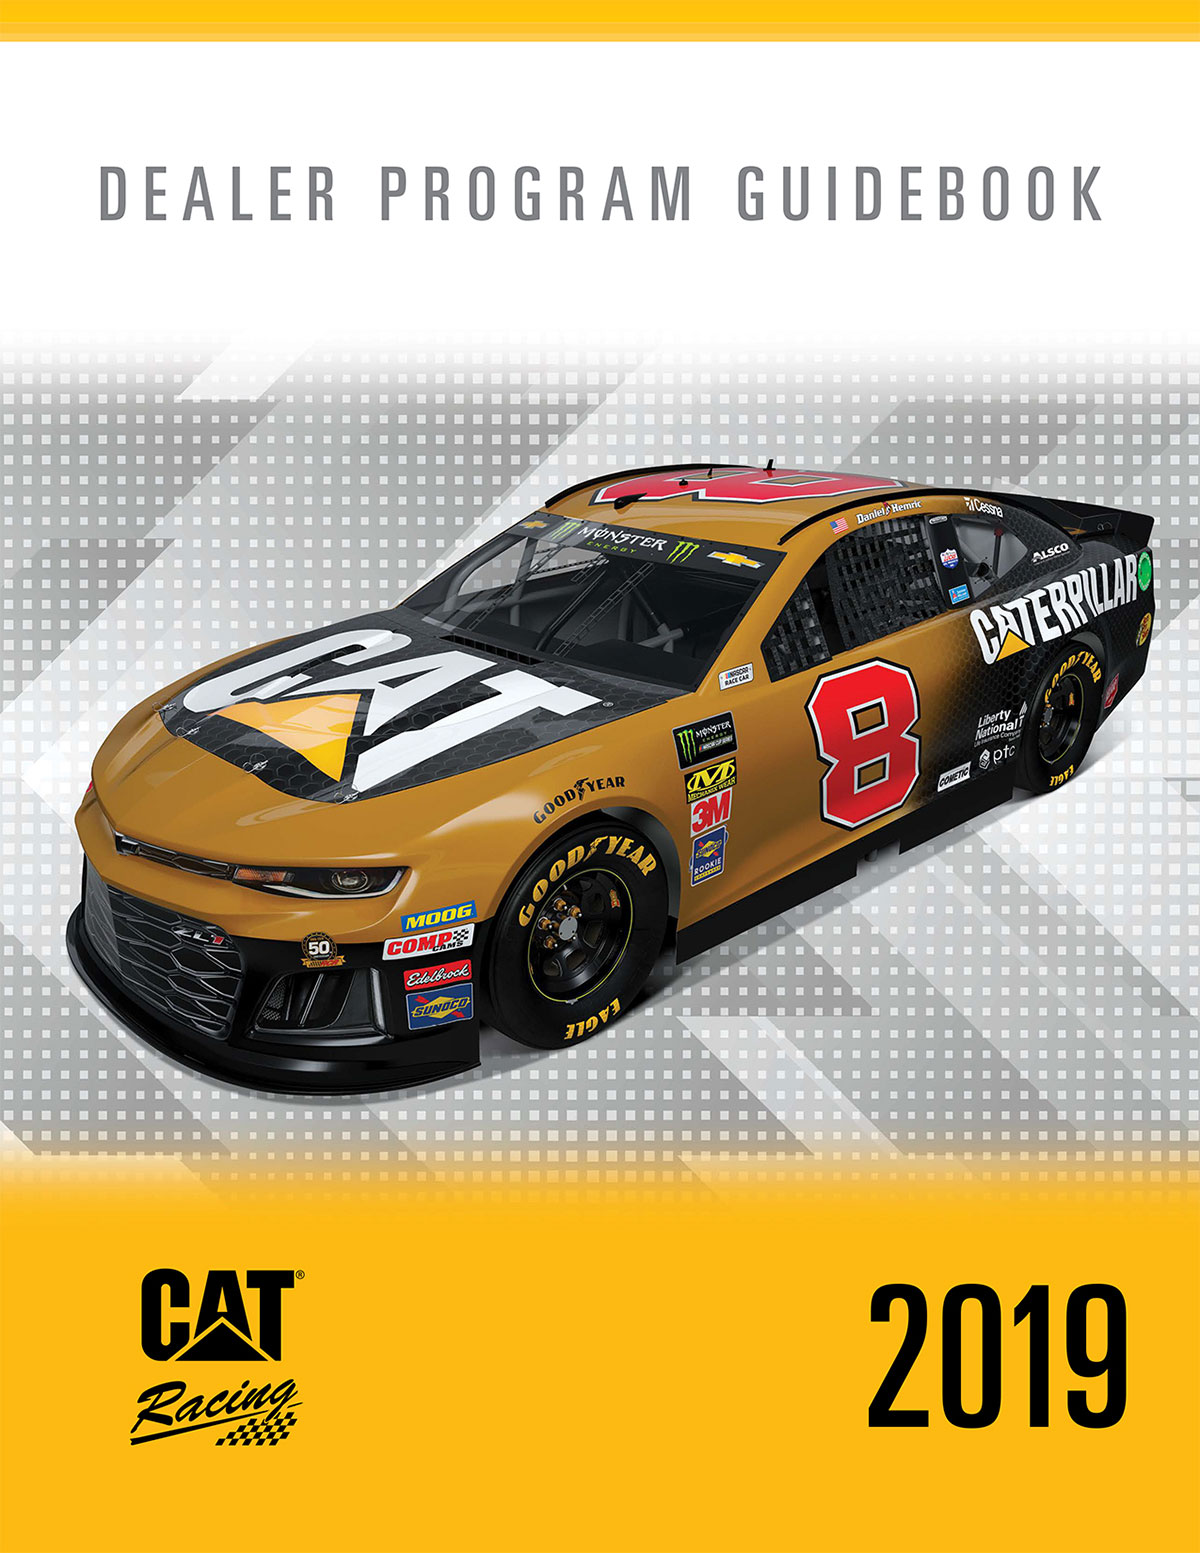 Cat Racing dealer program